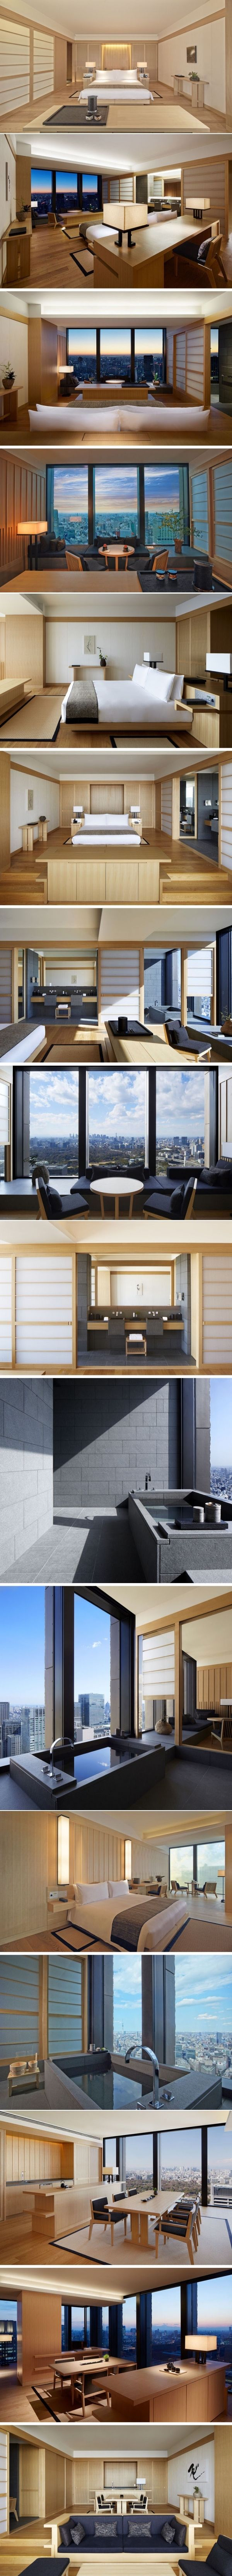 How-to mix contemporary interior design with elements of Japanese culture | CONTEMPORIST                                                                                                                                                                                 More